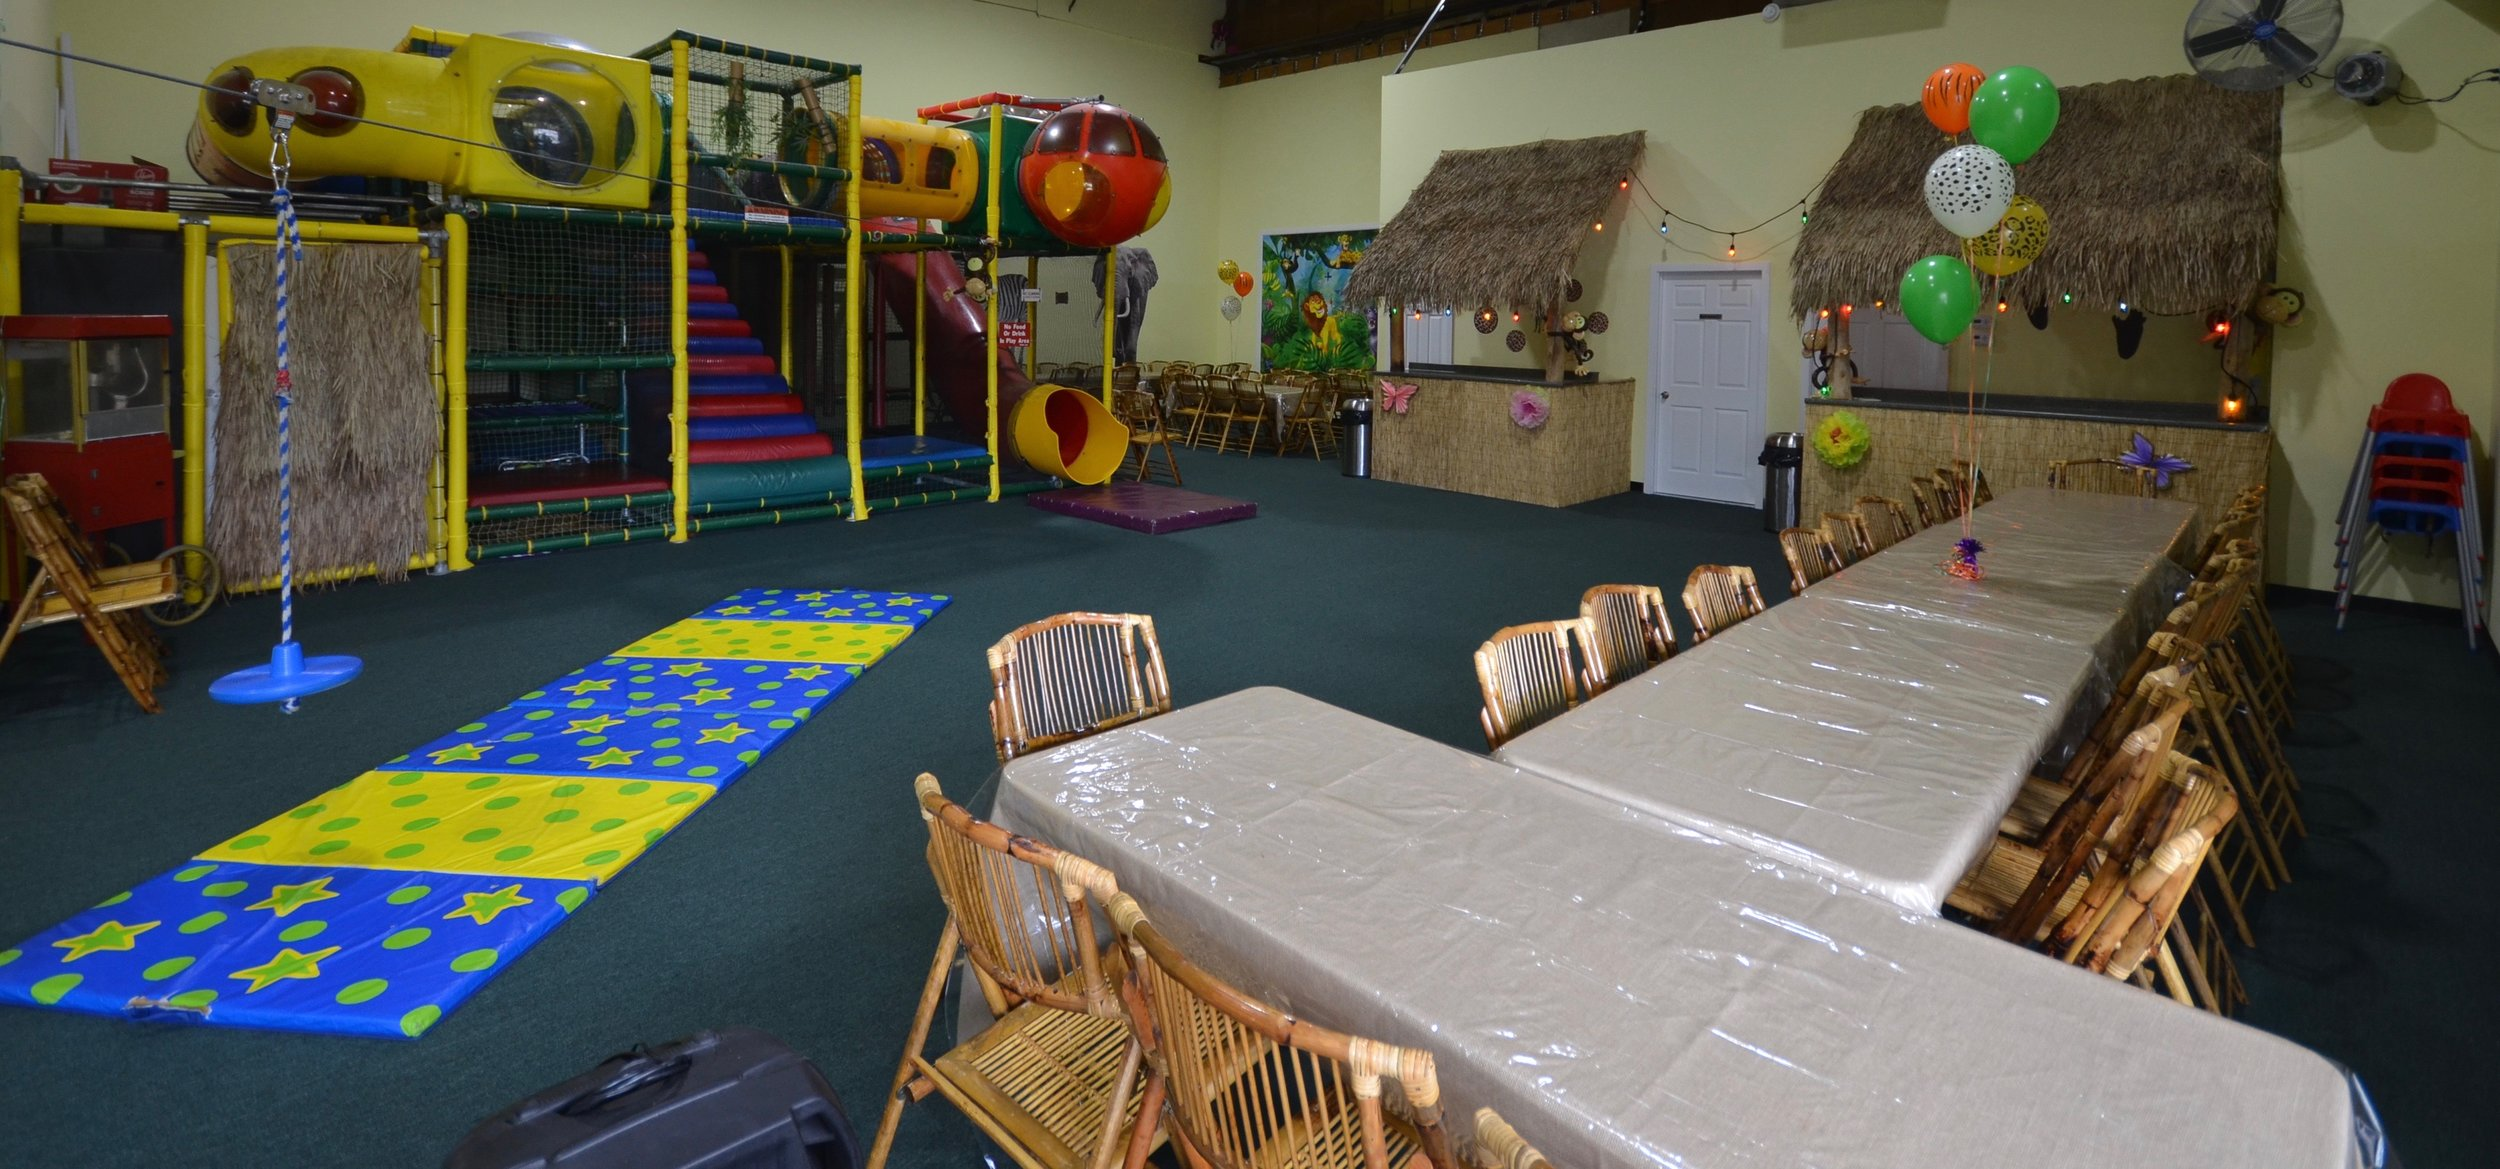 Come party & explore our all new 3,200 sq ft facility featuring 2 jungle gyms, a zip line, rock wall, and ball pit!  Accommodations for up to 100 guests! And only one private party at a time.